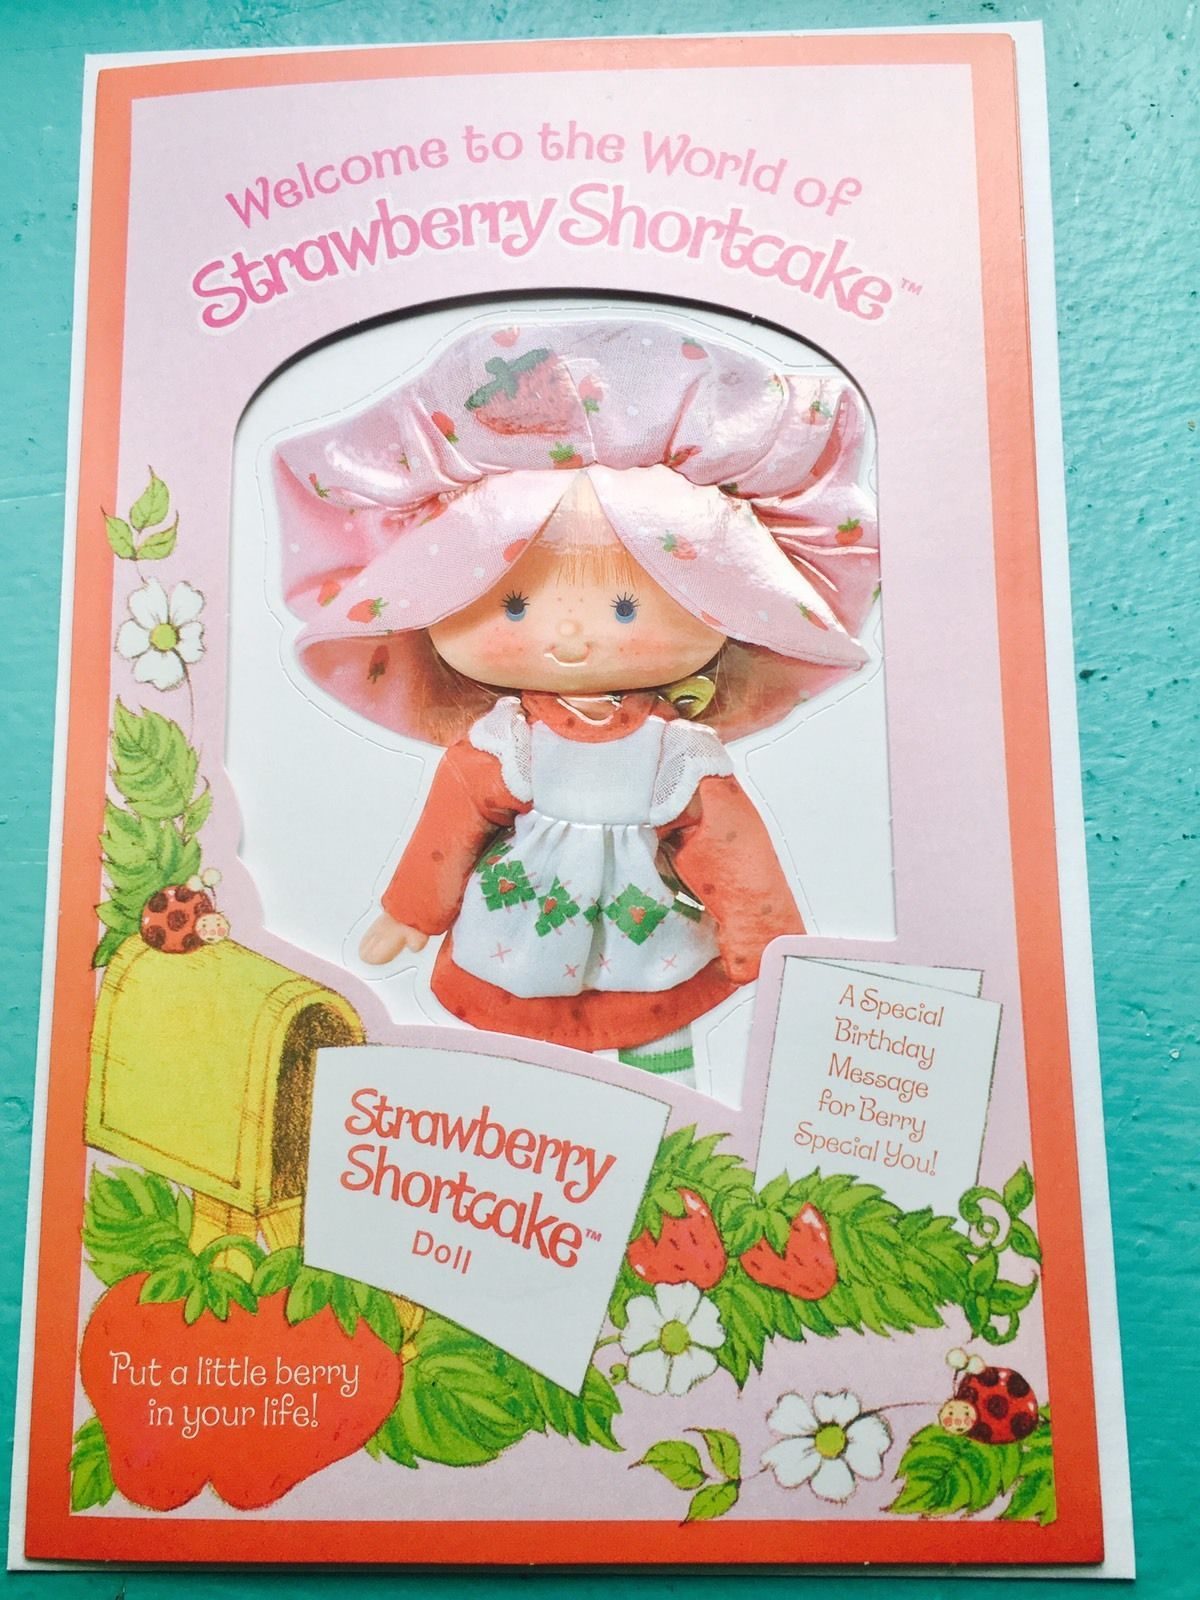 Httpswwwebaycomitmvintage Strawberry Shortcake Pop Up Card Rare172982969252Hash=Item284696A3A4G2Nmaaoswcmzzuocd